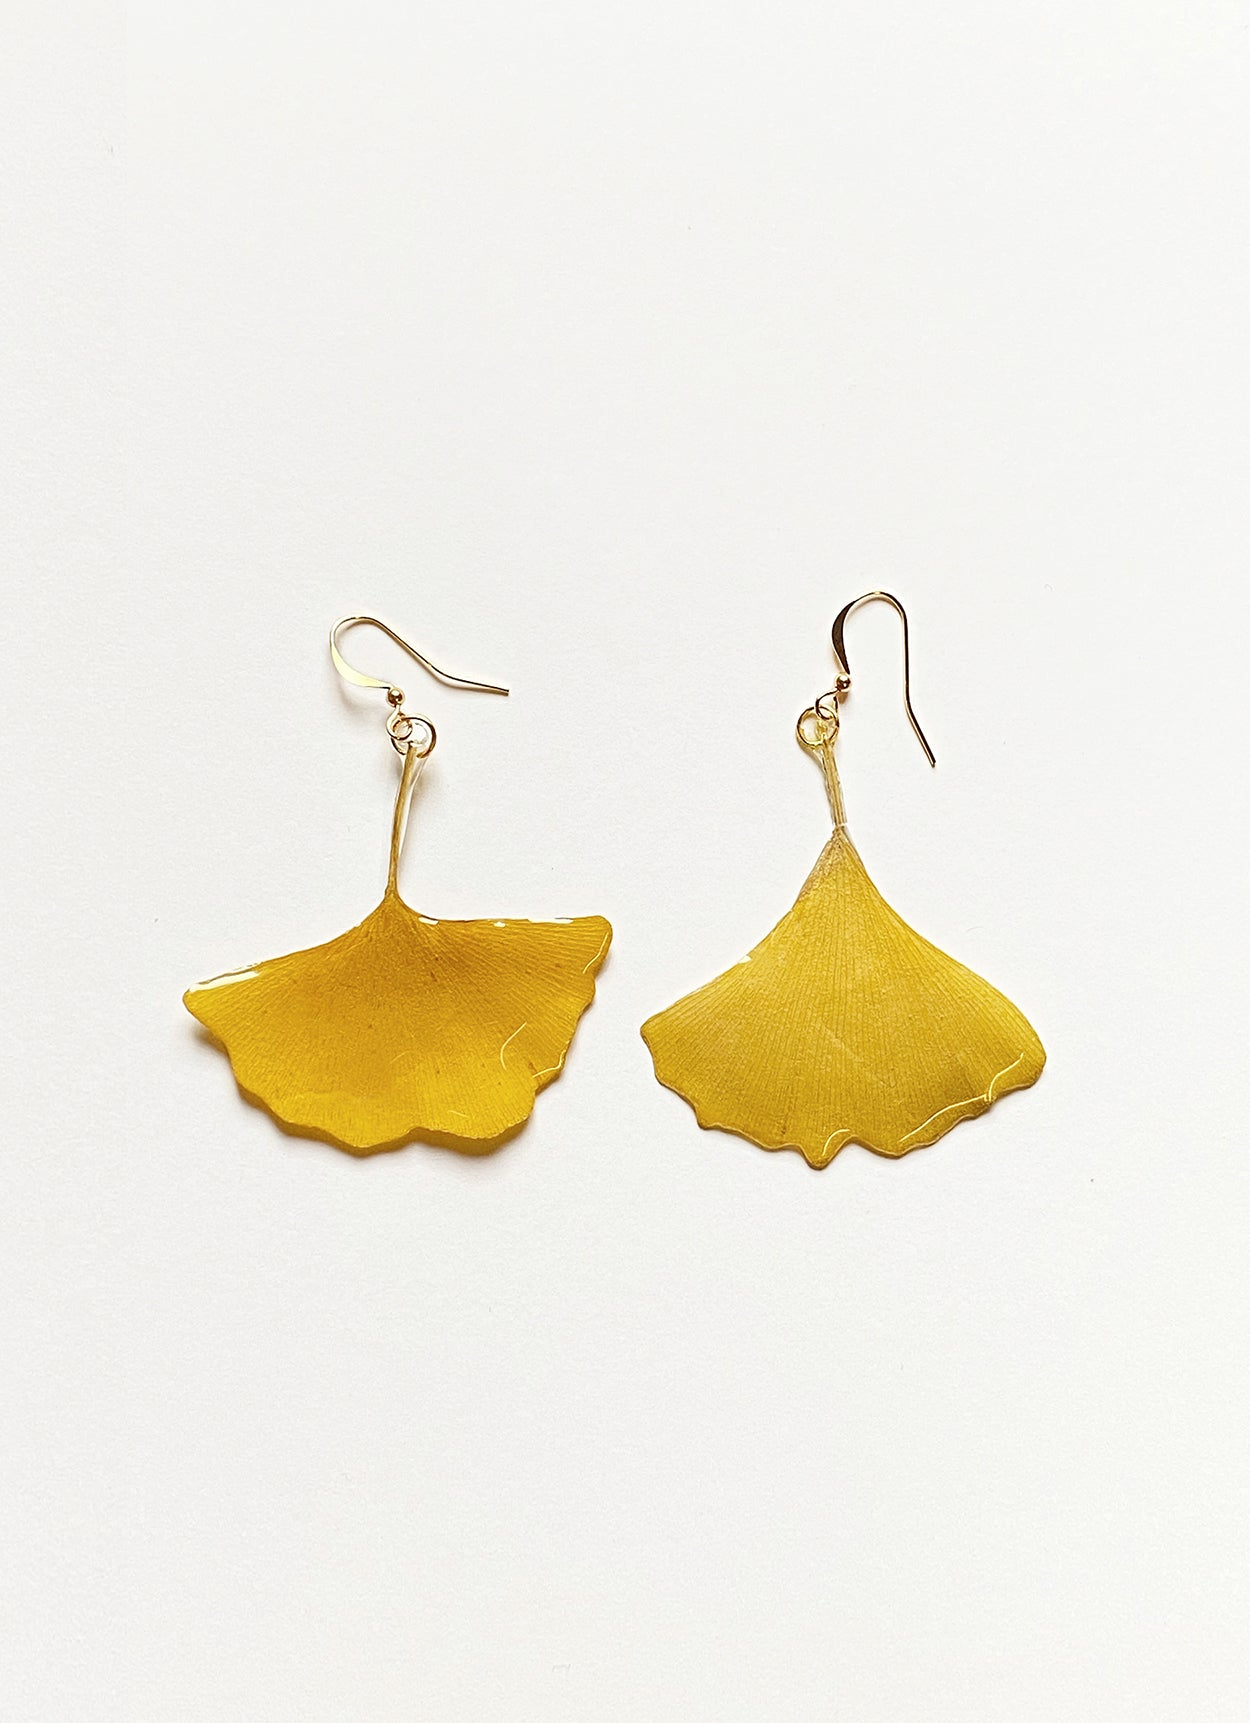 Biloba Earrings